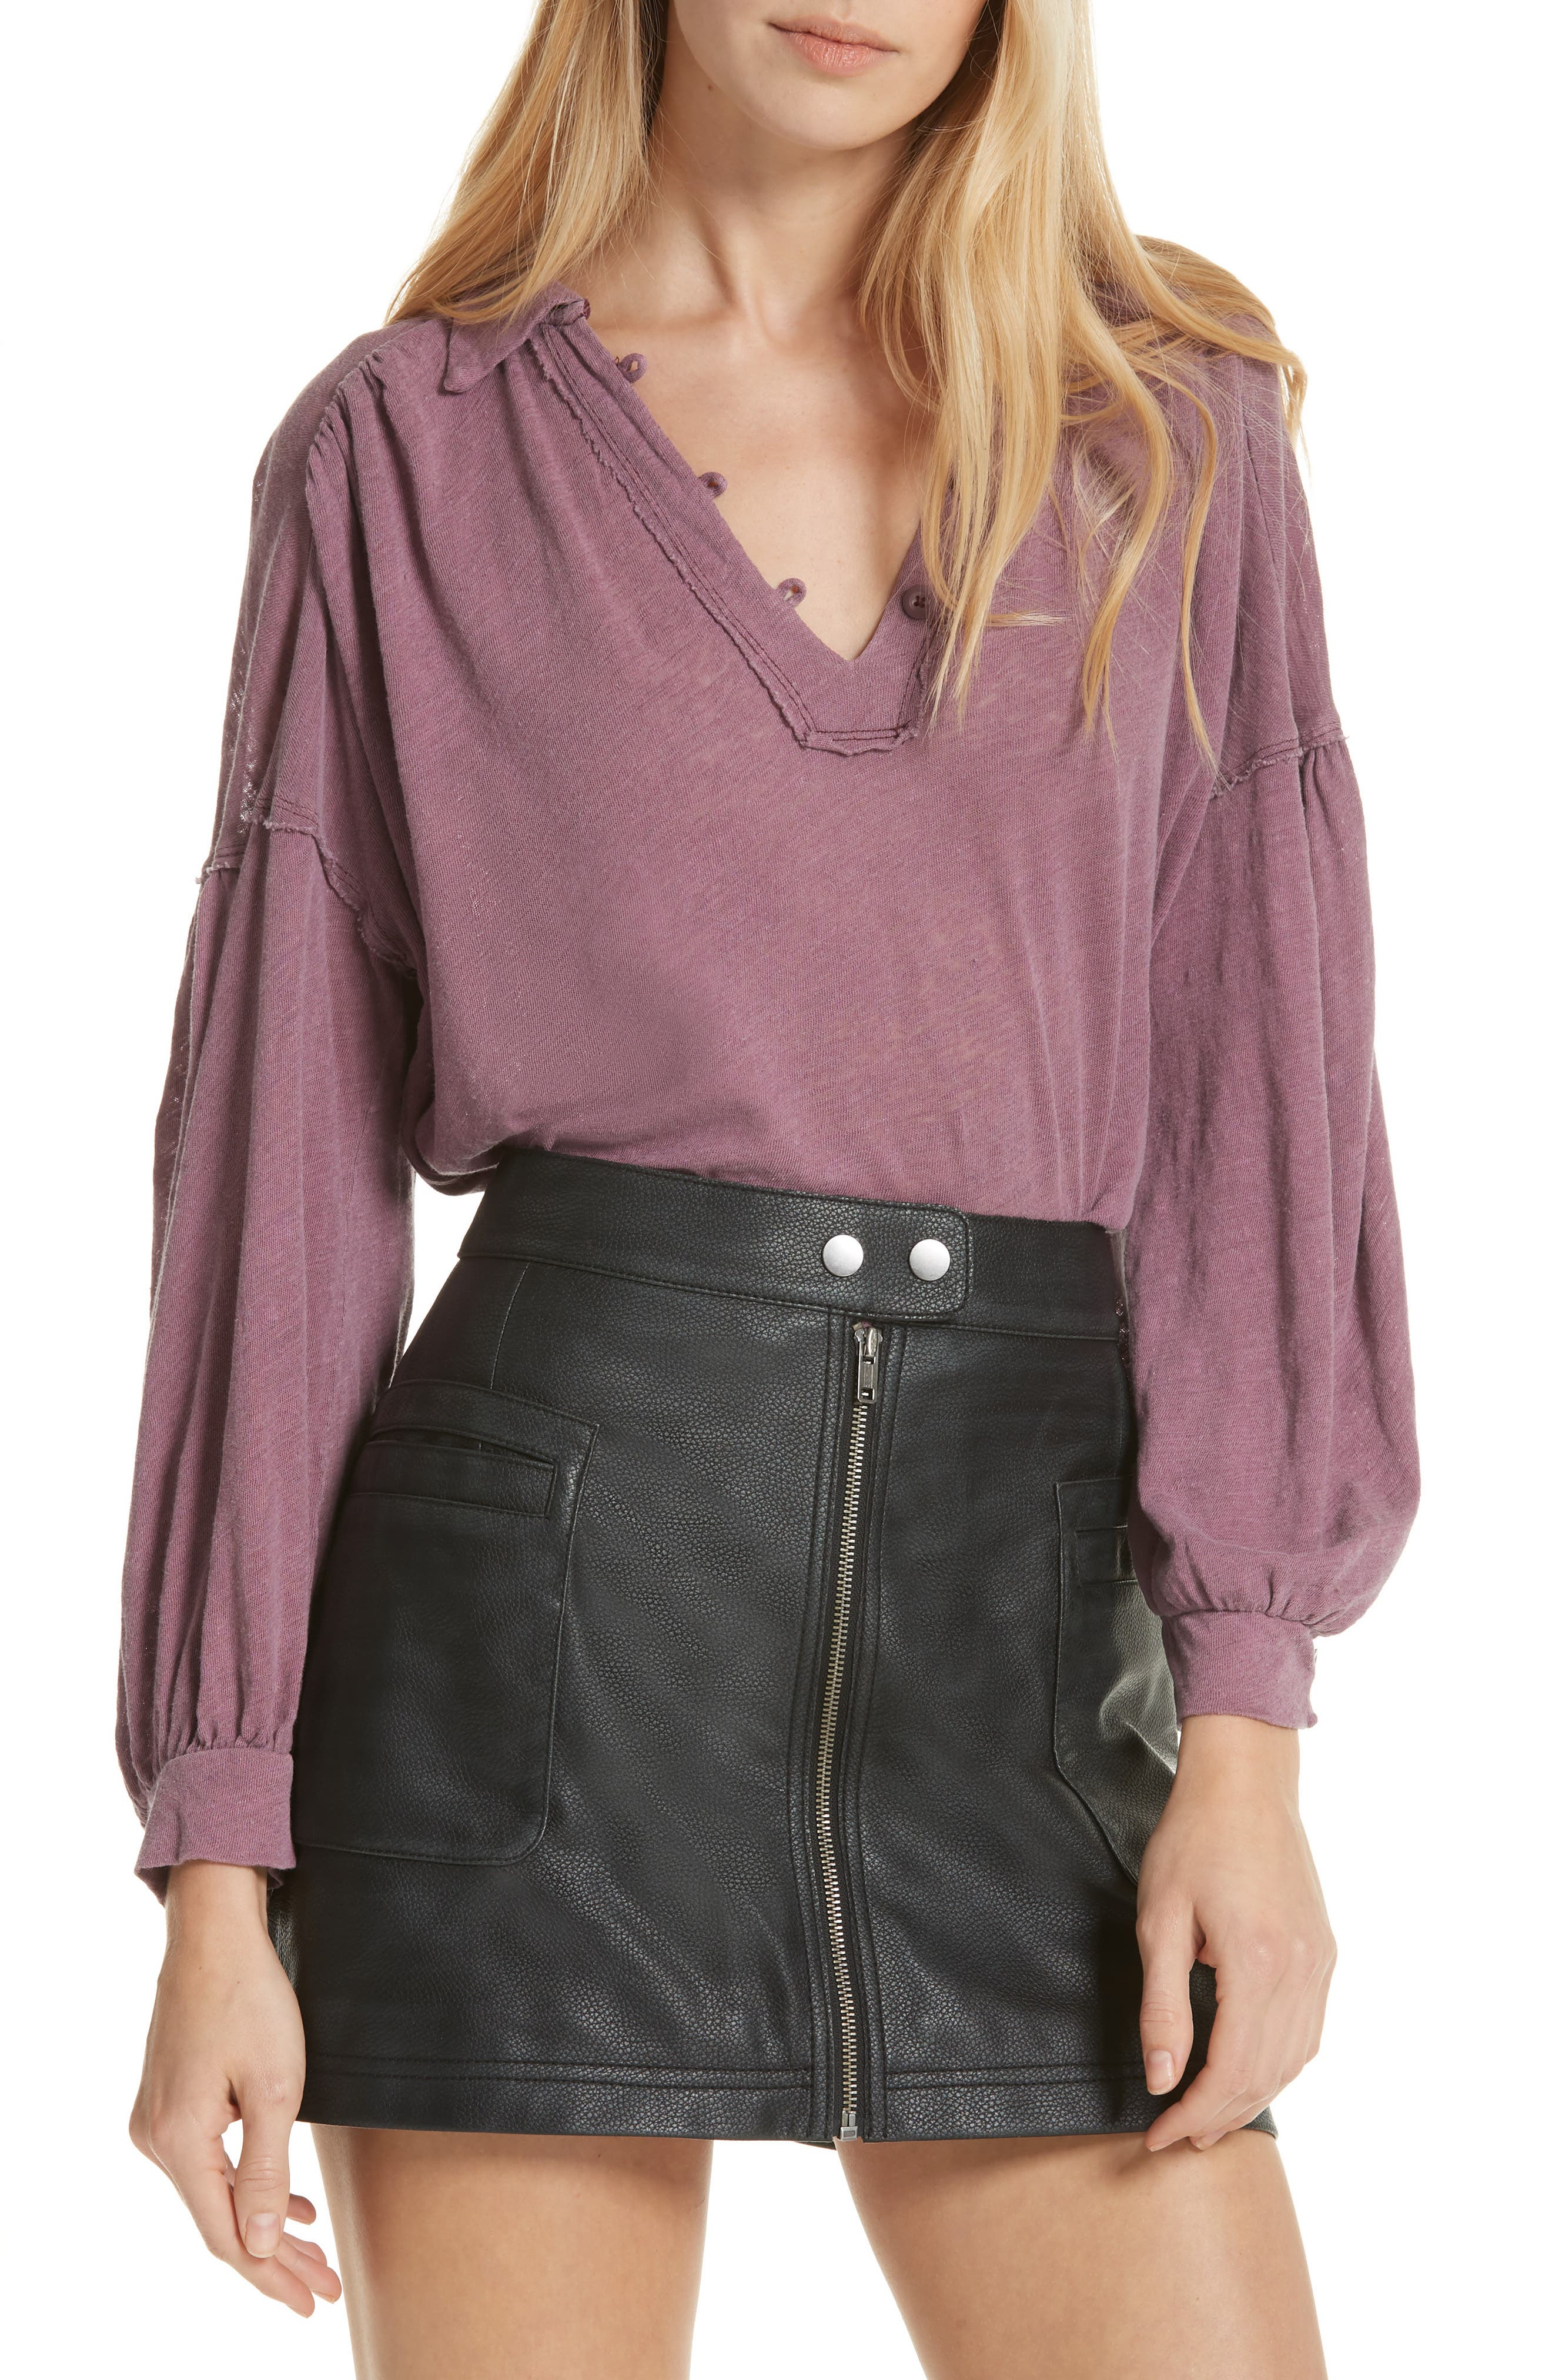 Rush Hour Top,                         Main,                         color, WINE